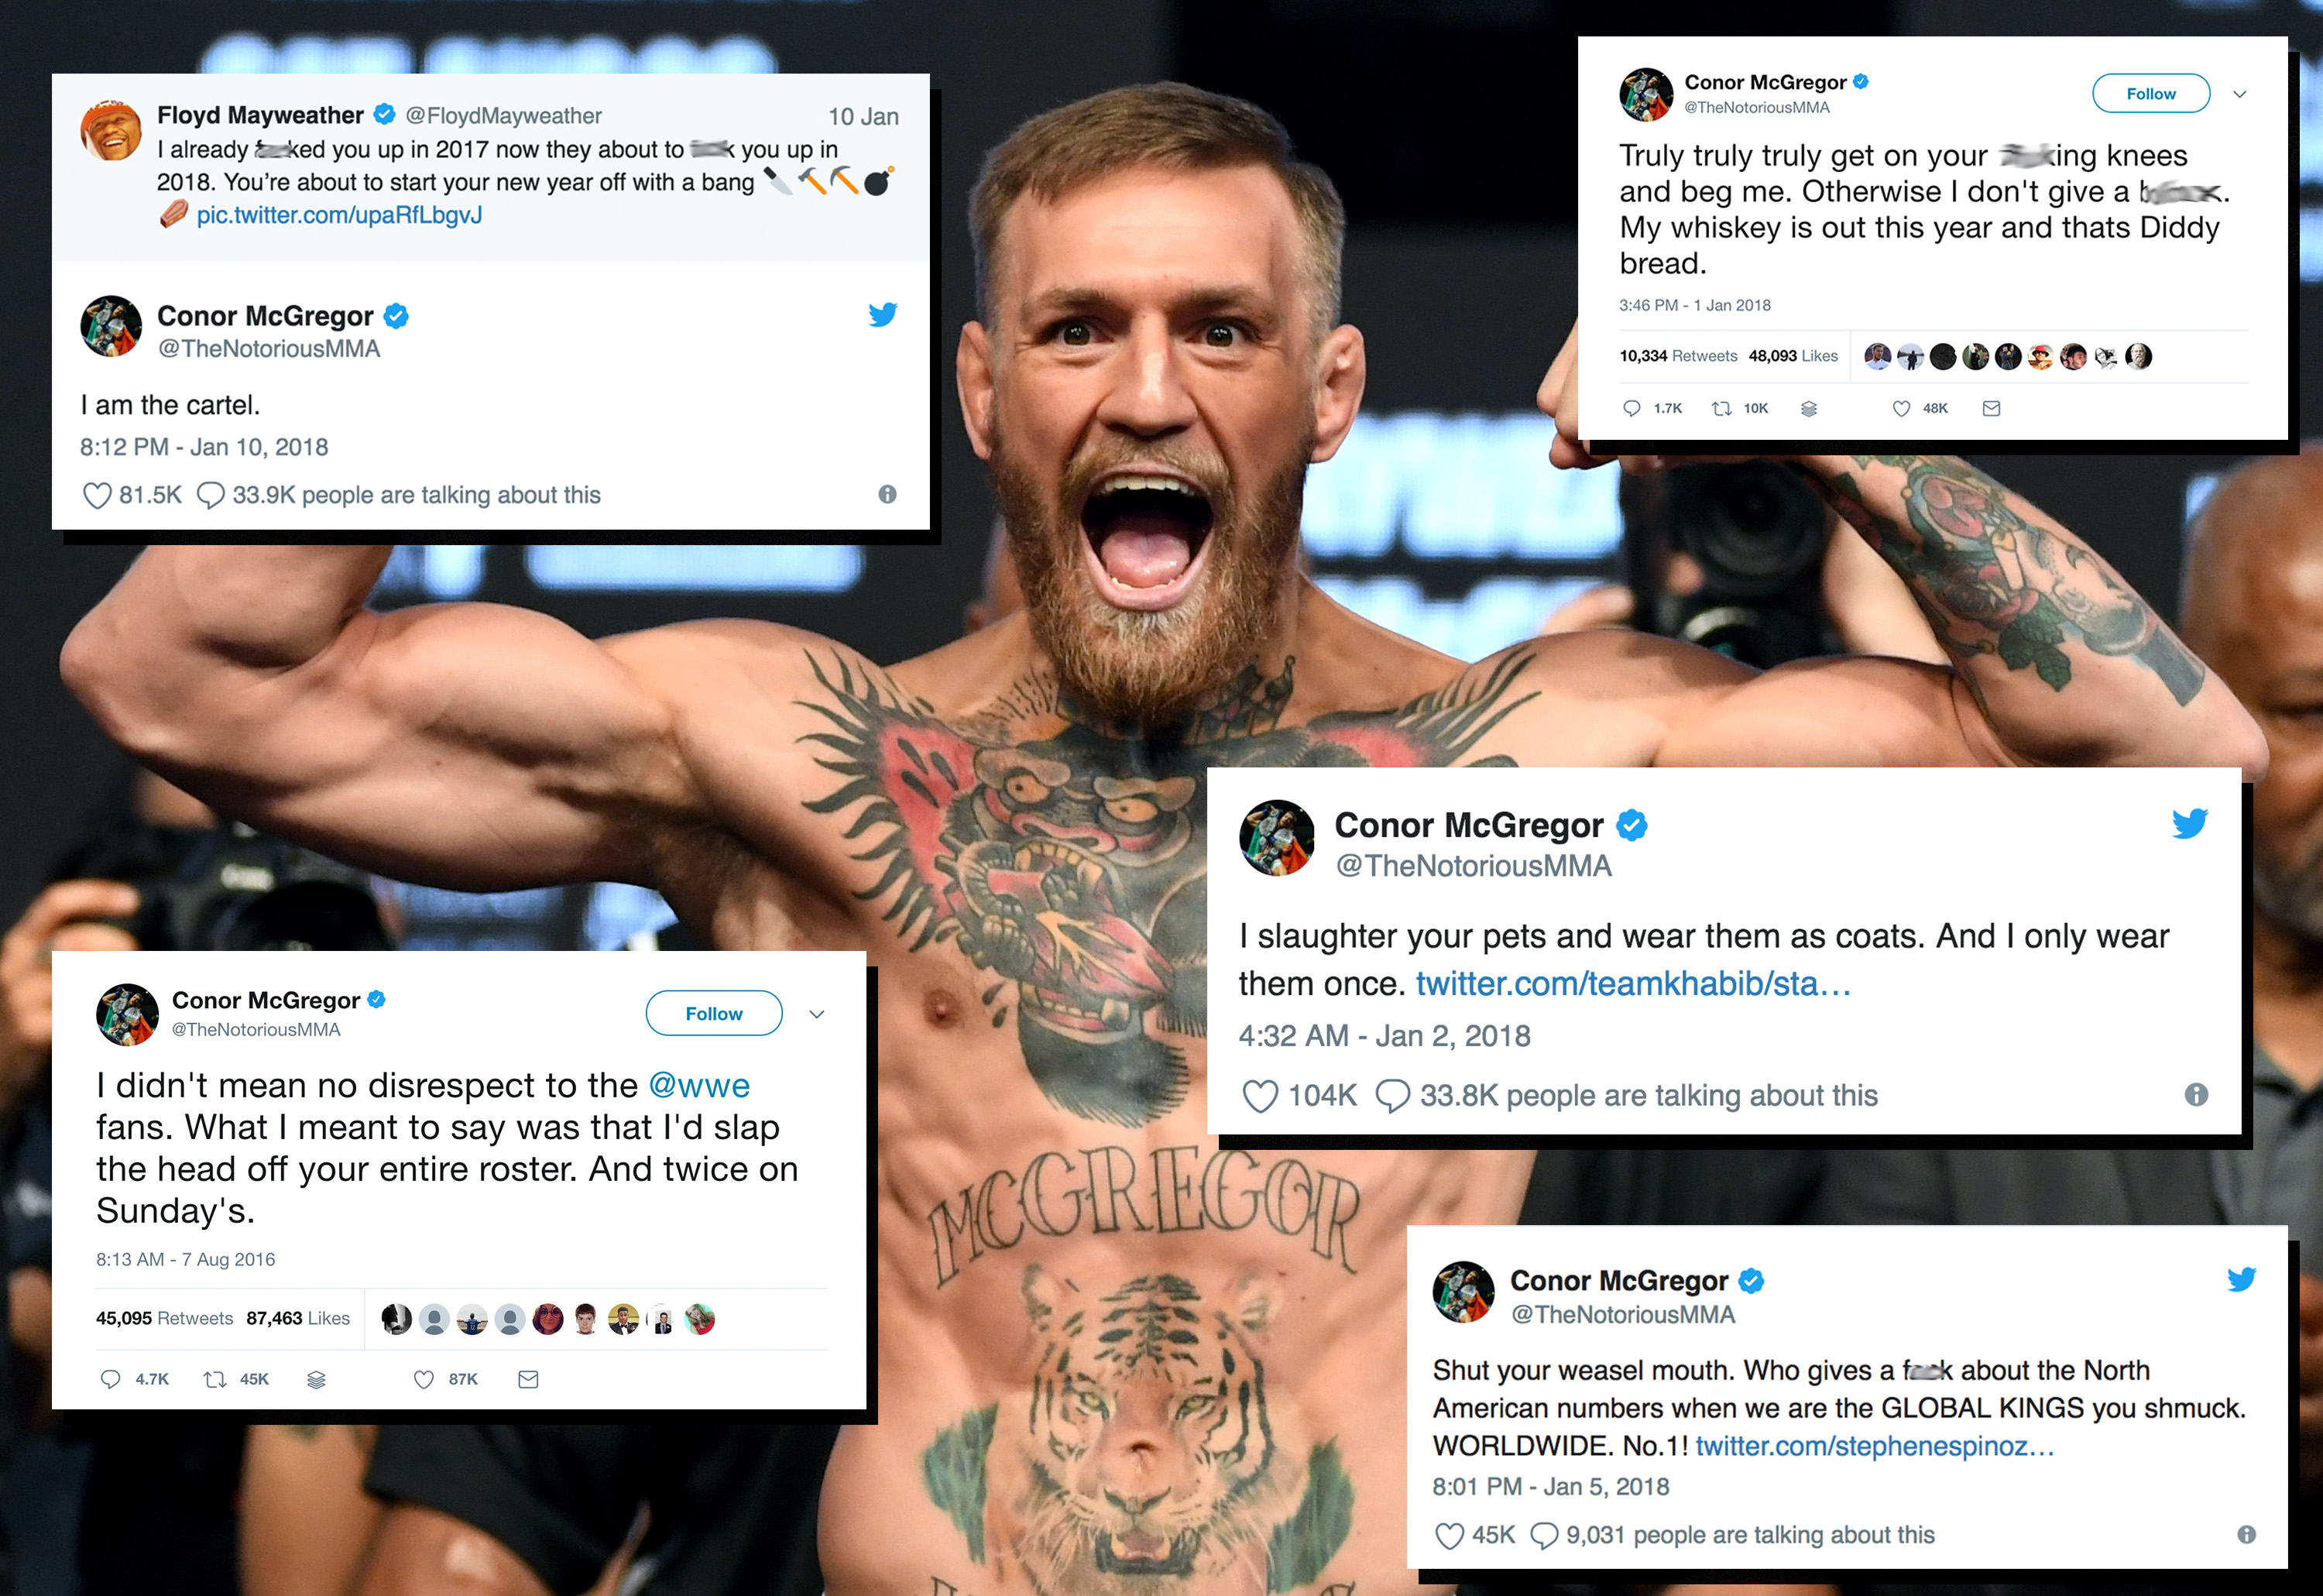 Conor McGregor burns Floyd Mayweather on social media